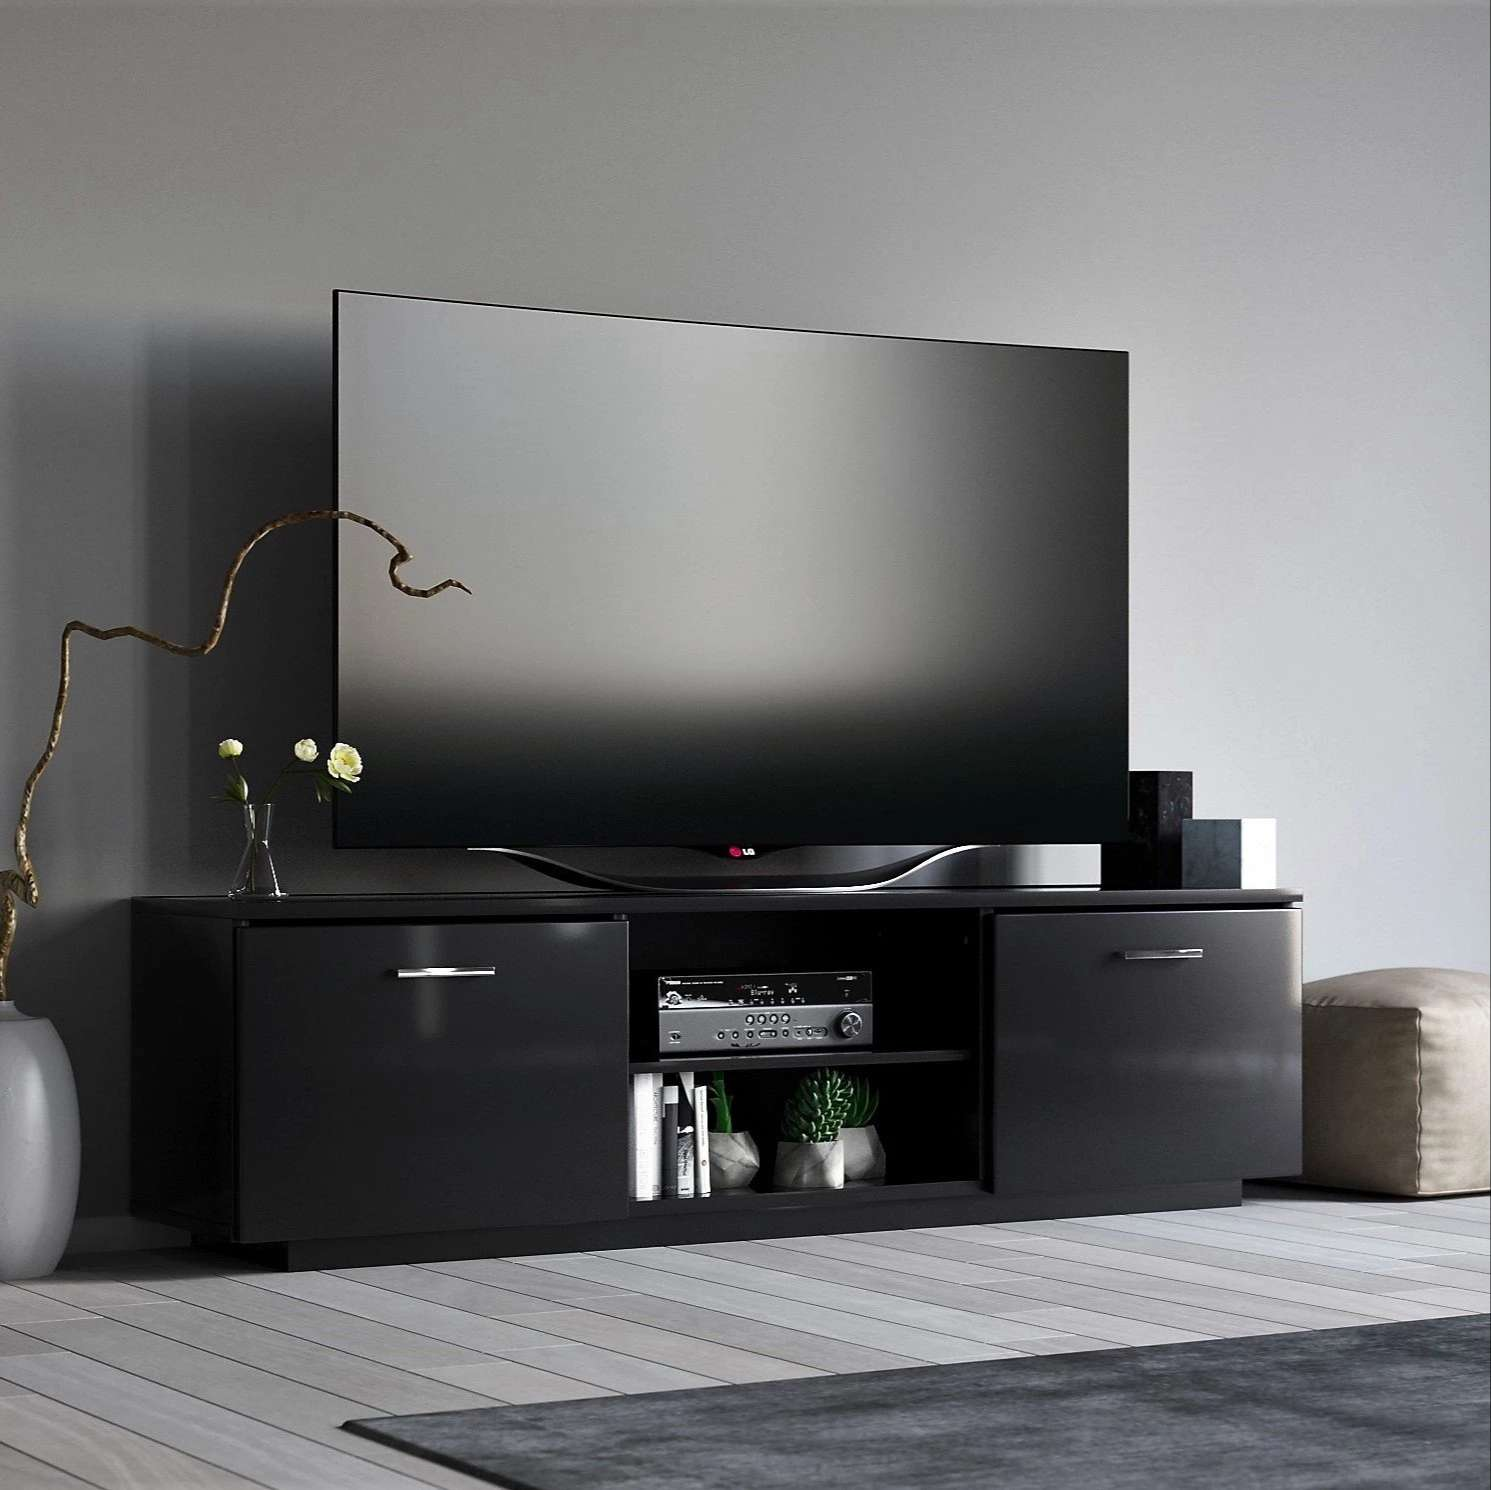 Modern Black TV Cabinet - ROSKILDE gloss black finish media unit